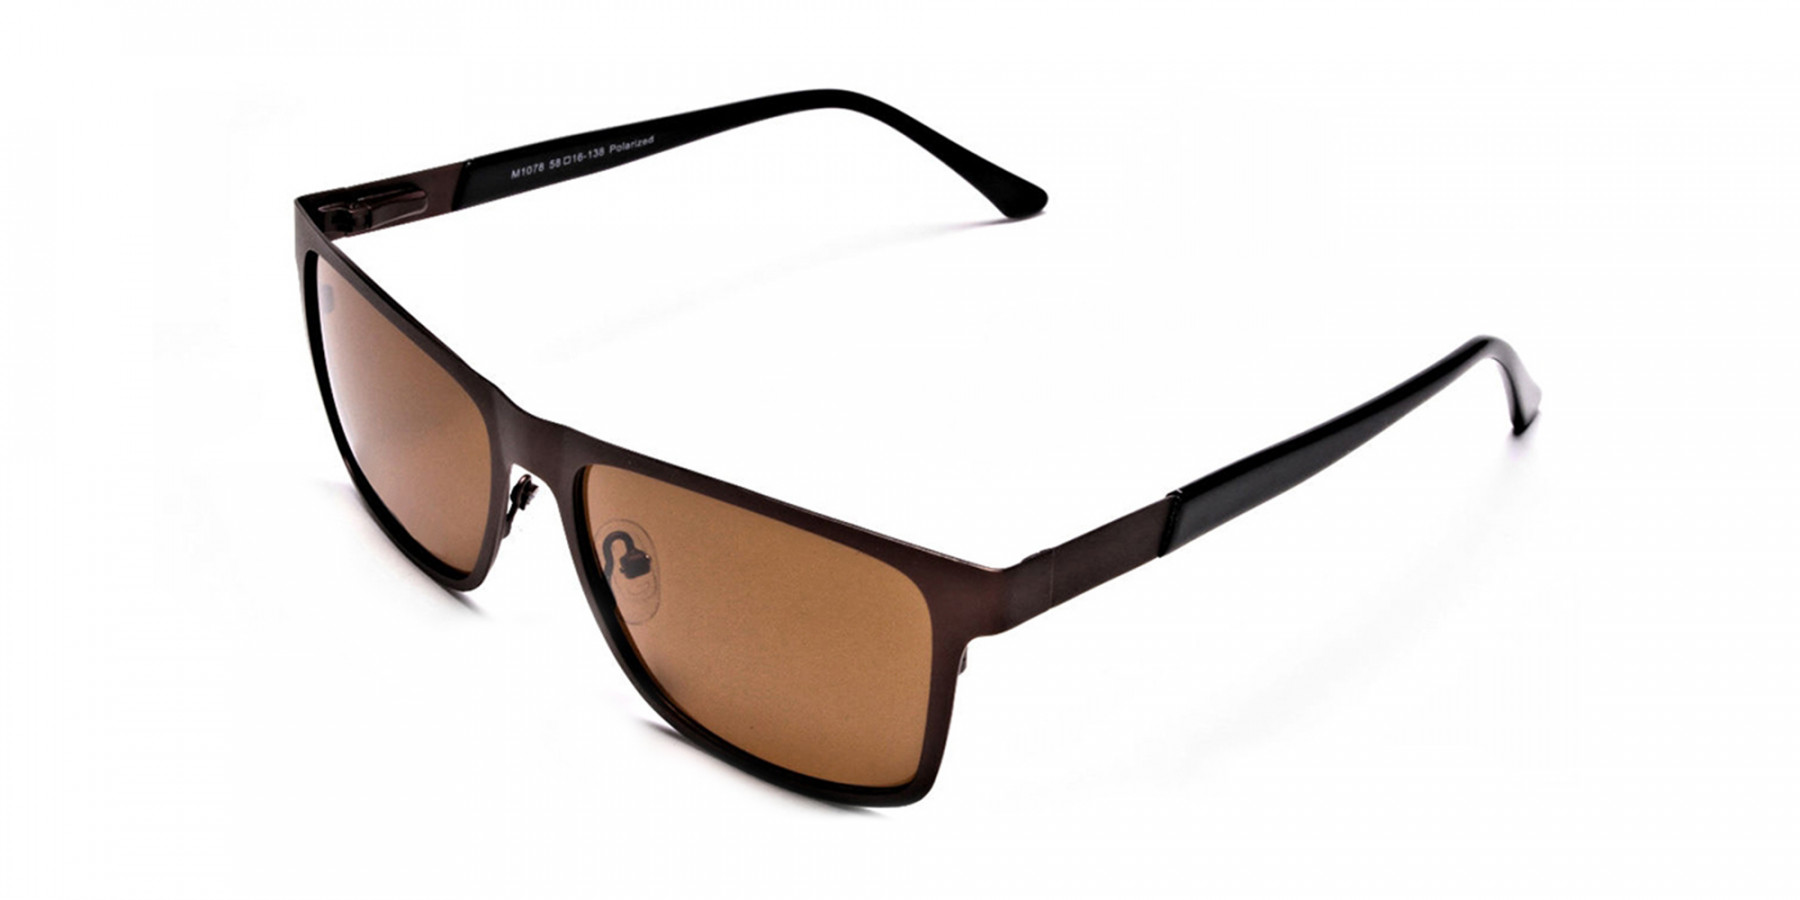 Brown Wayfarer Sunglasses for Men and Women - 2